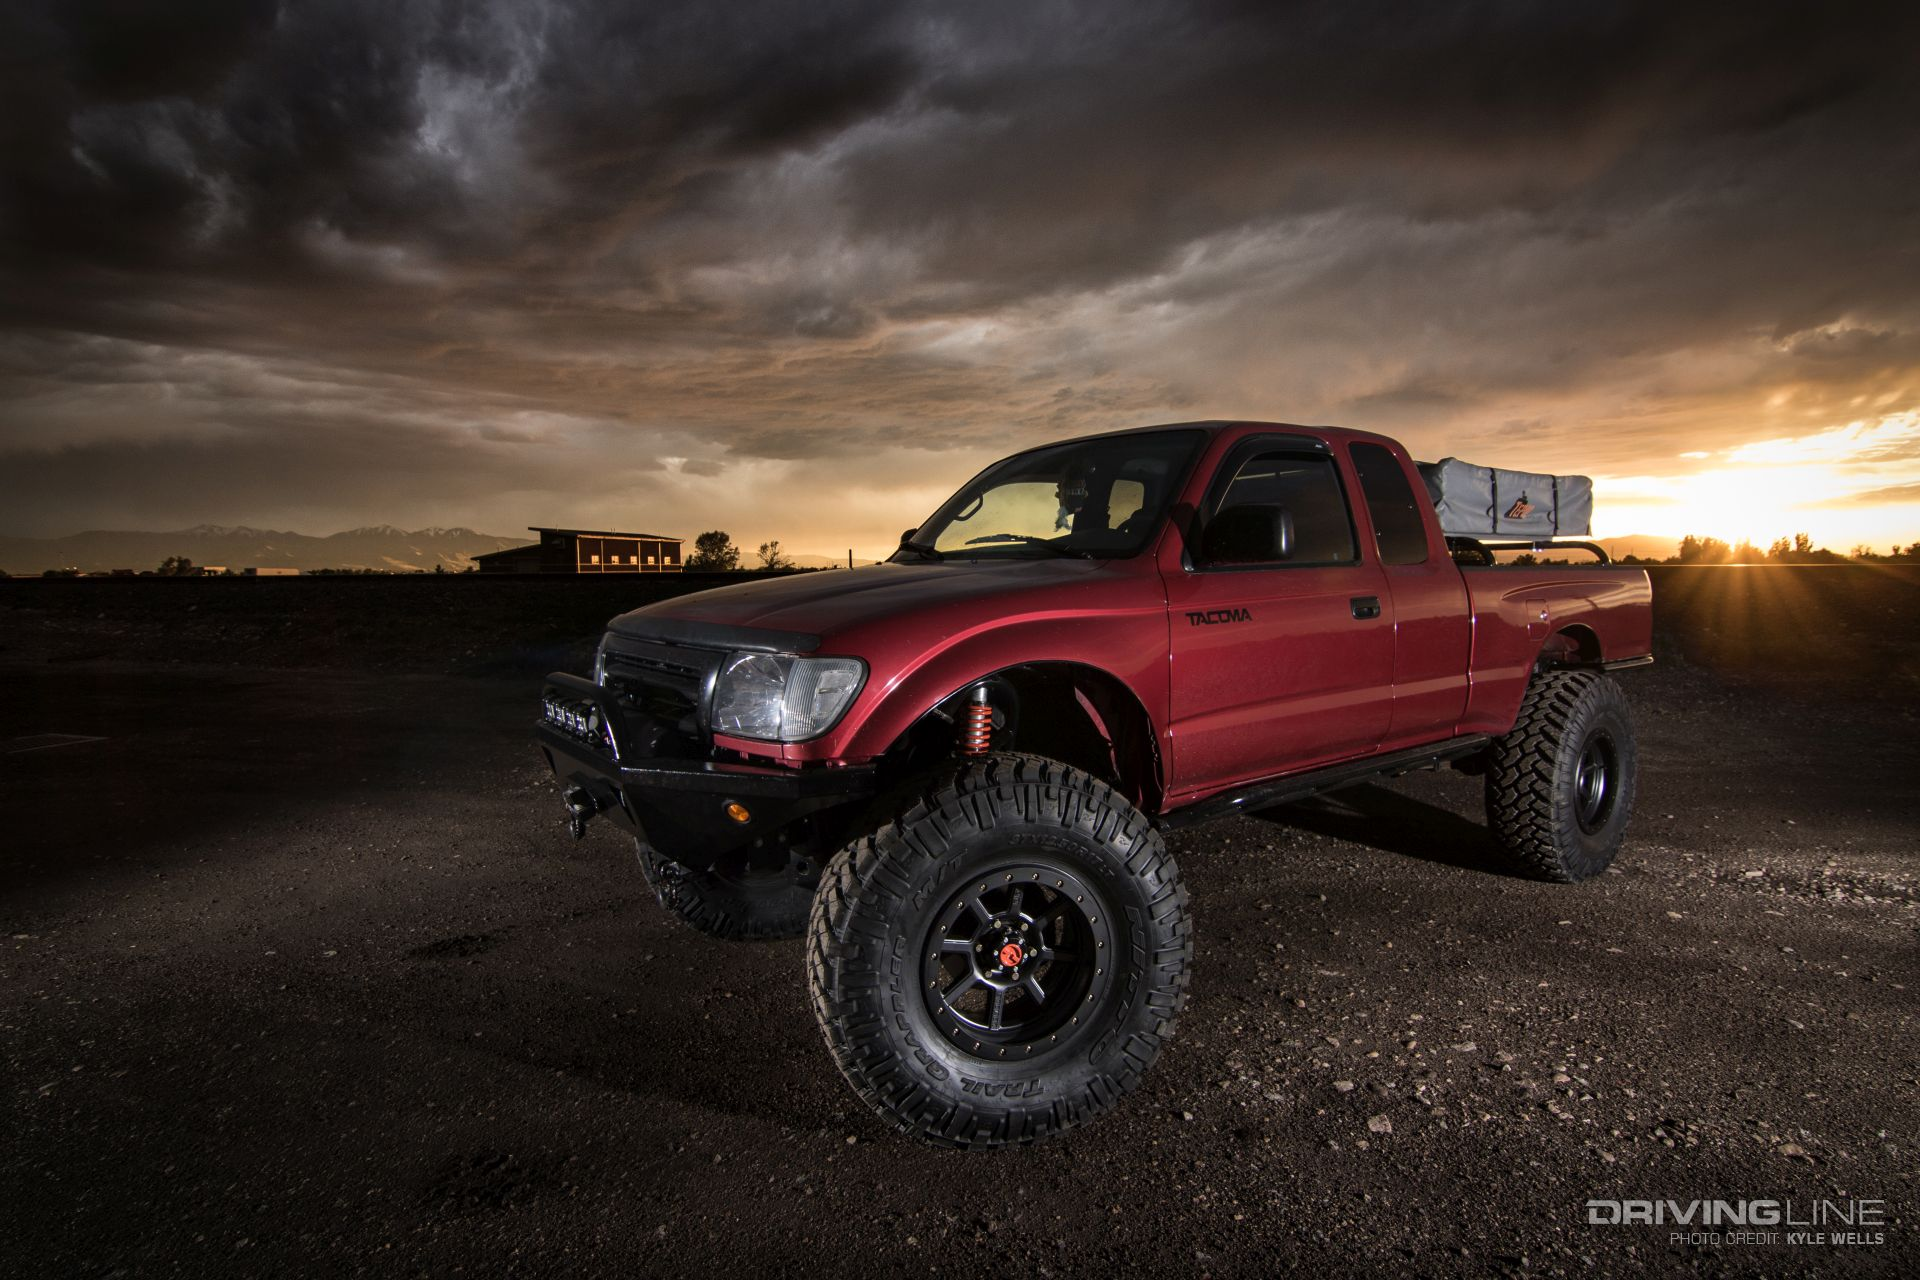 Supreme Taco A Solid Axle 2000 Toyota Tacoma Built To